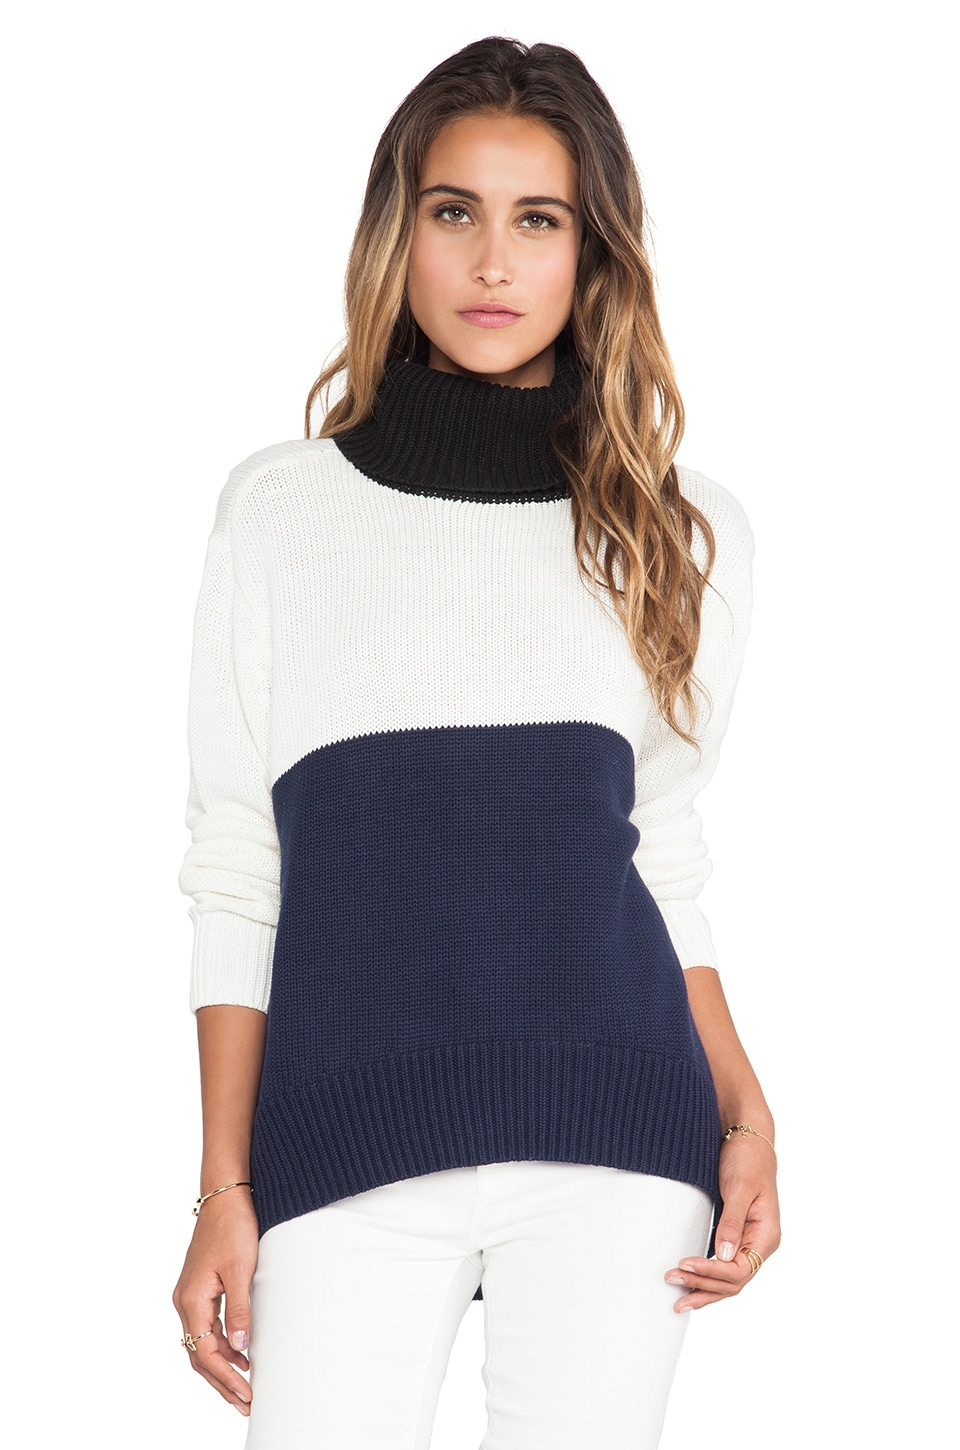 Shona Joy Bewildered Spliced Turtleneck in Navy & Multi